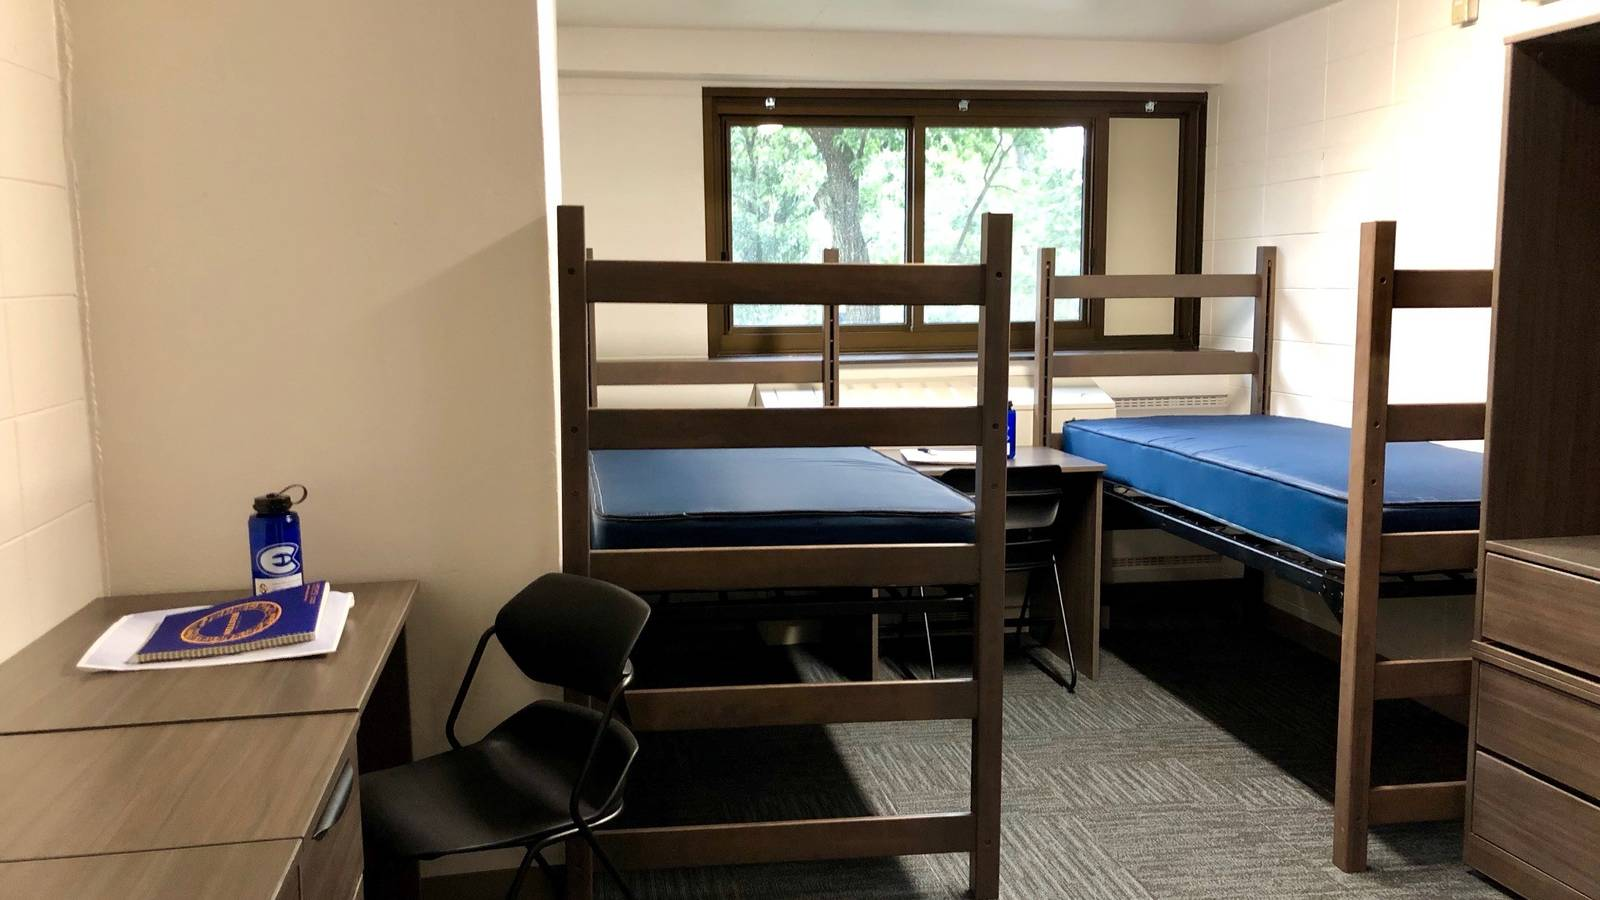 Each room includes two beds, desks and wardrobes